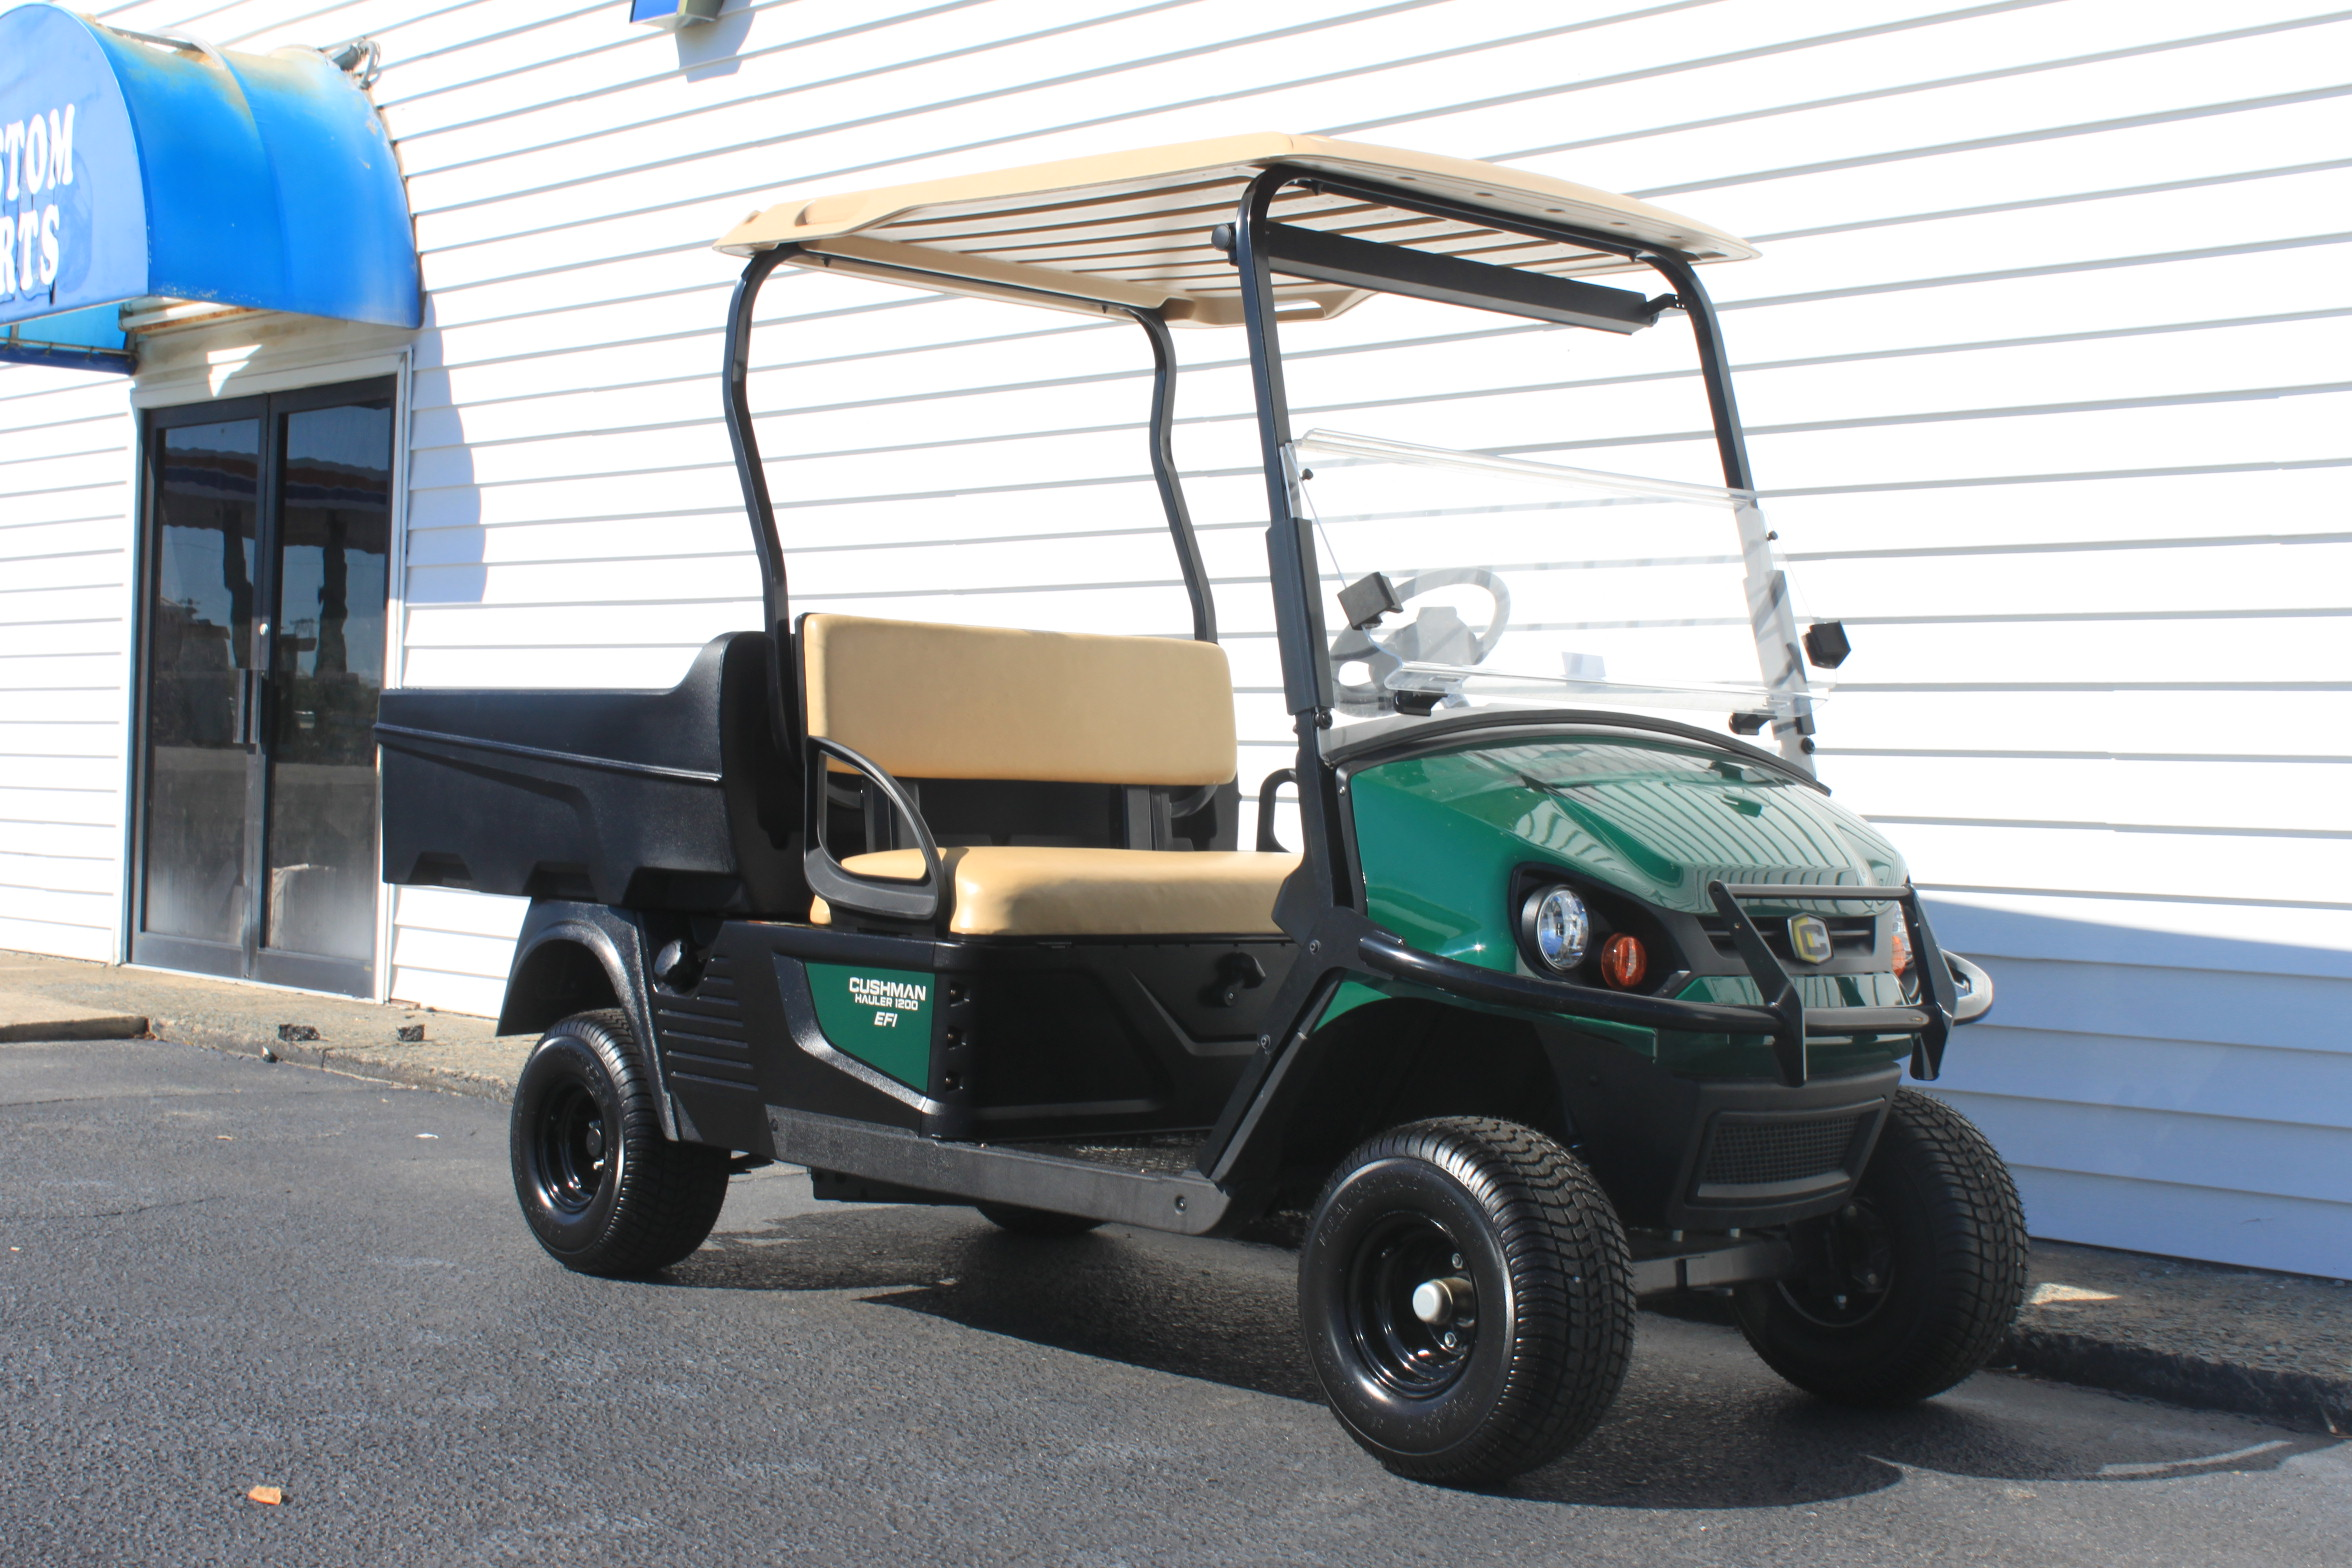 STOCK# CUSH19, 2019 CUSHMAN HAULER 1200 EFI GAS CART